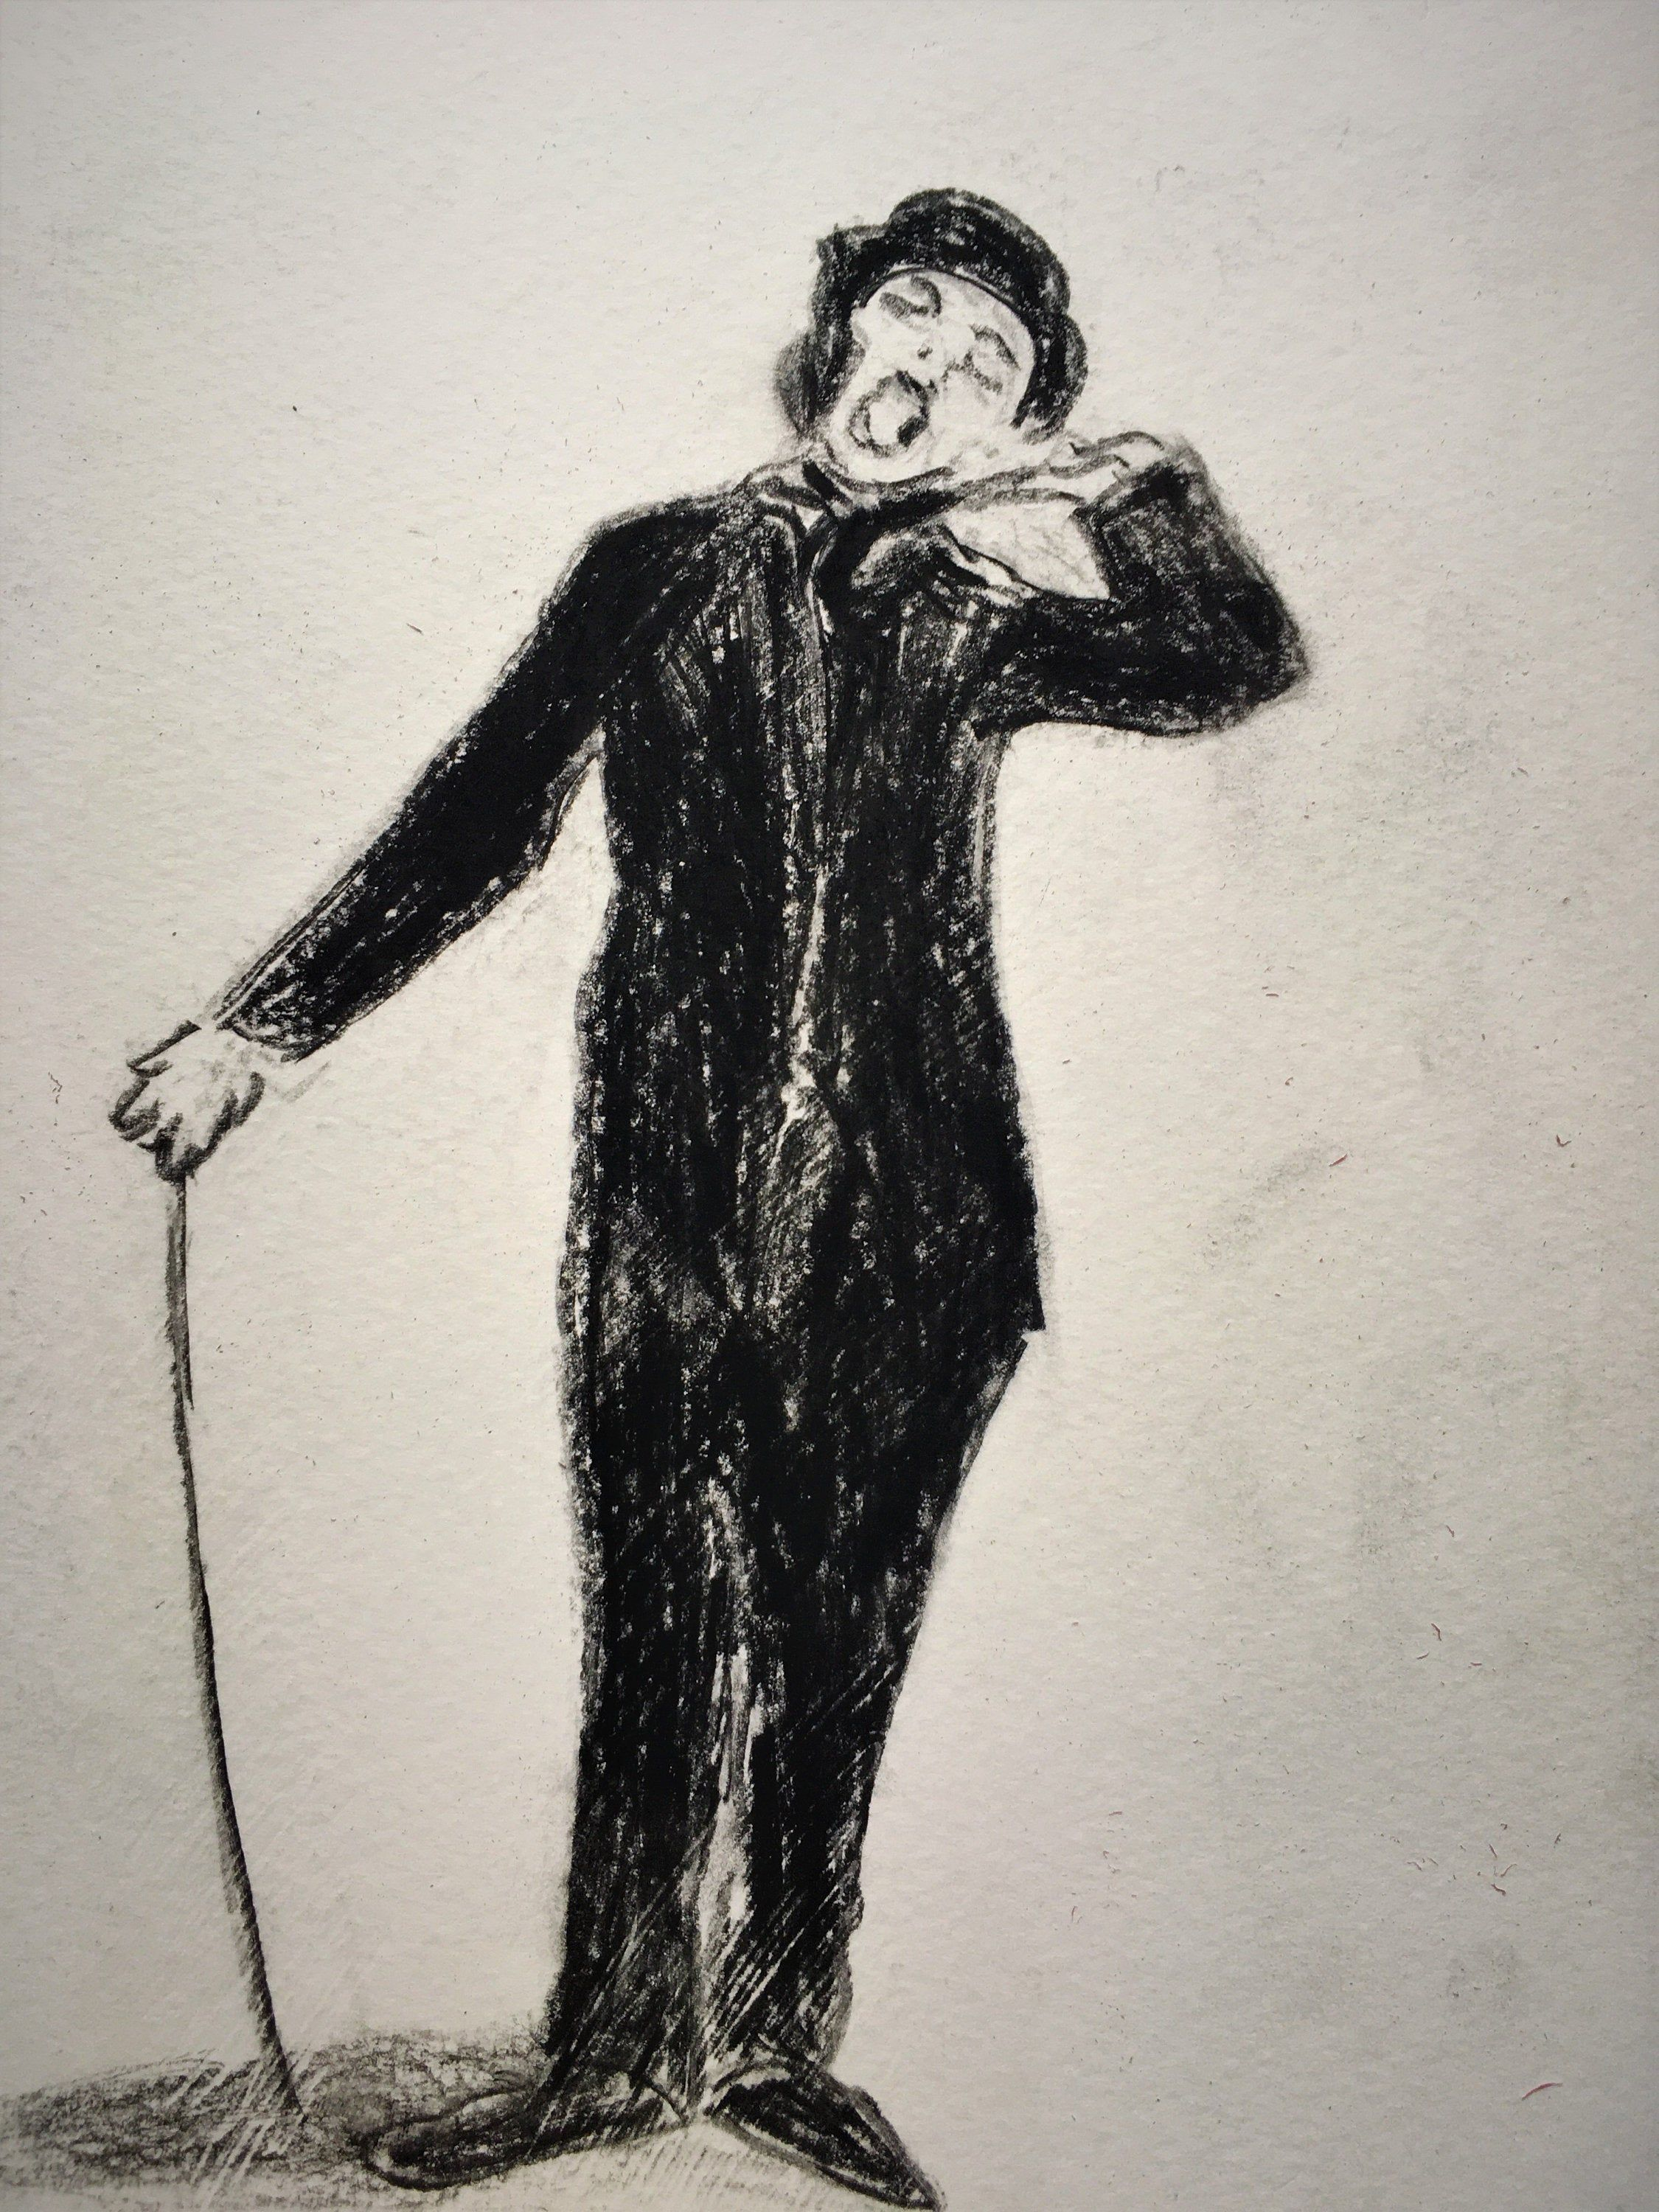 1920's version of the Tramp. Charlie Chaplin look-a-like, Silent Film Era, Black & White, Vintage, Charcoal - Instant Download